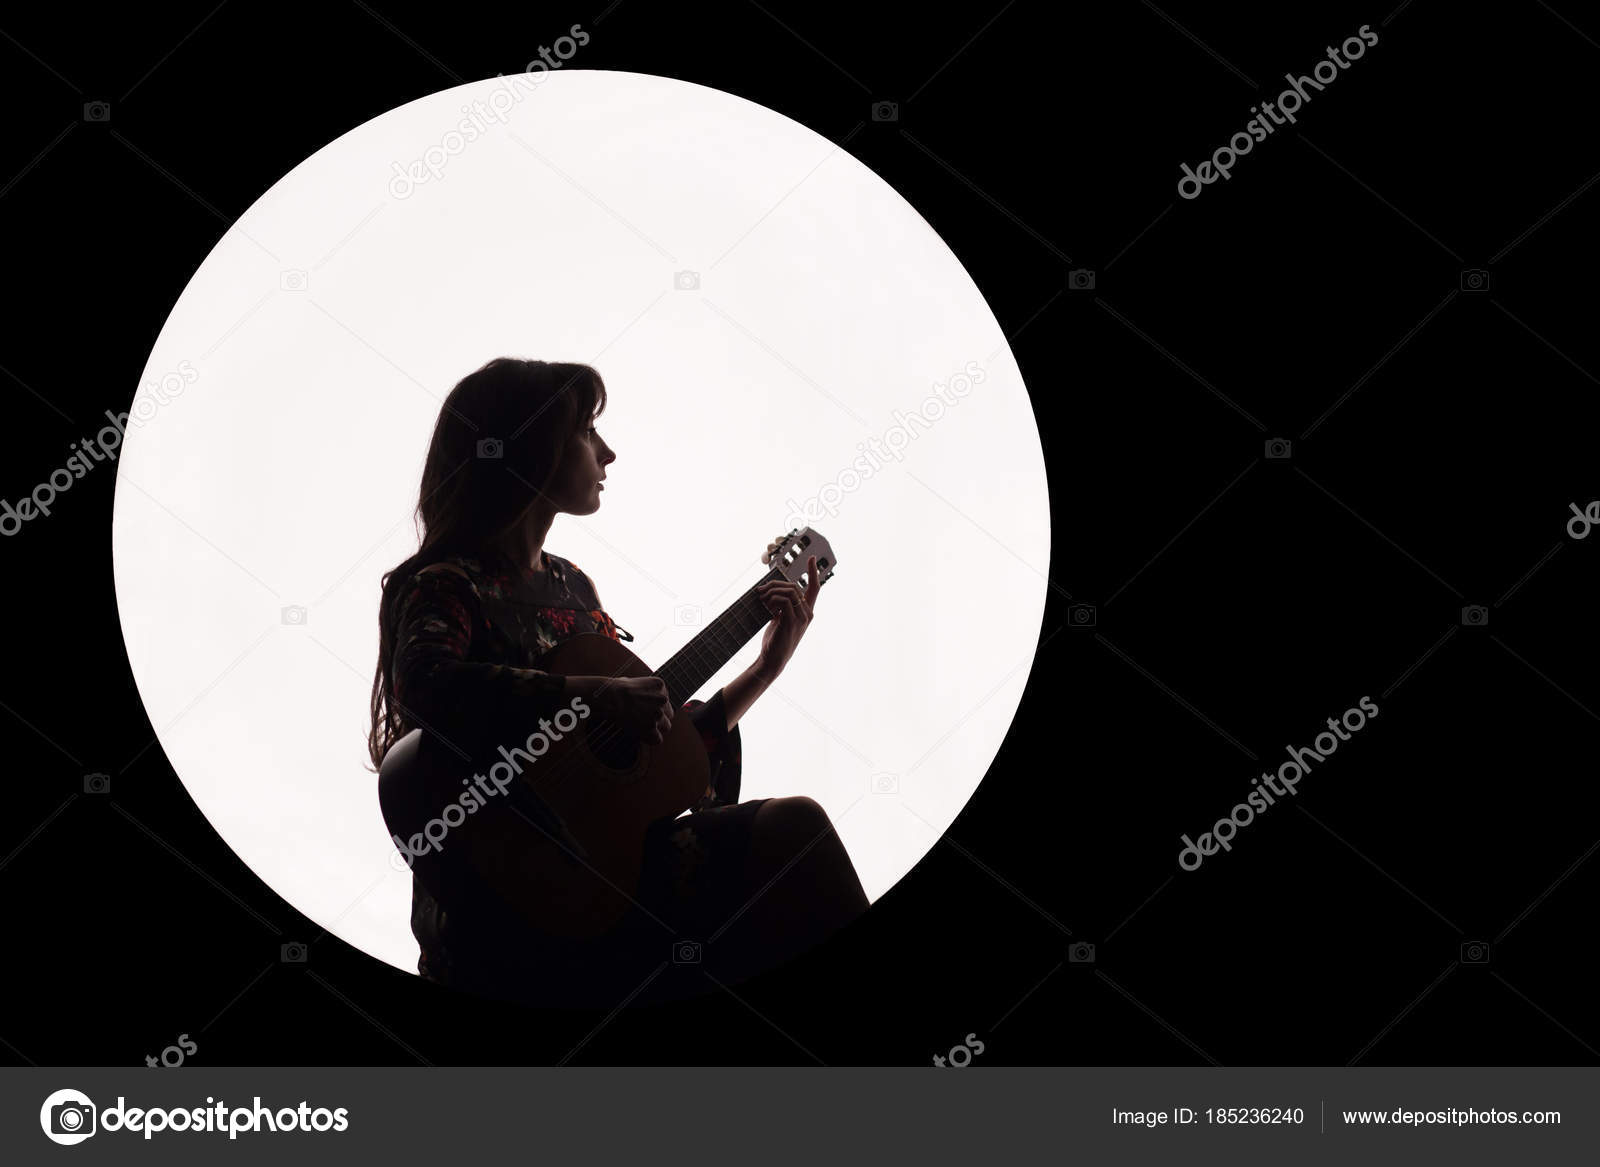 Silhouette of a beautiful brunette girl playing guitar